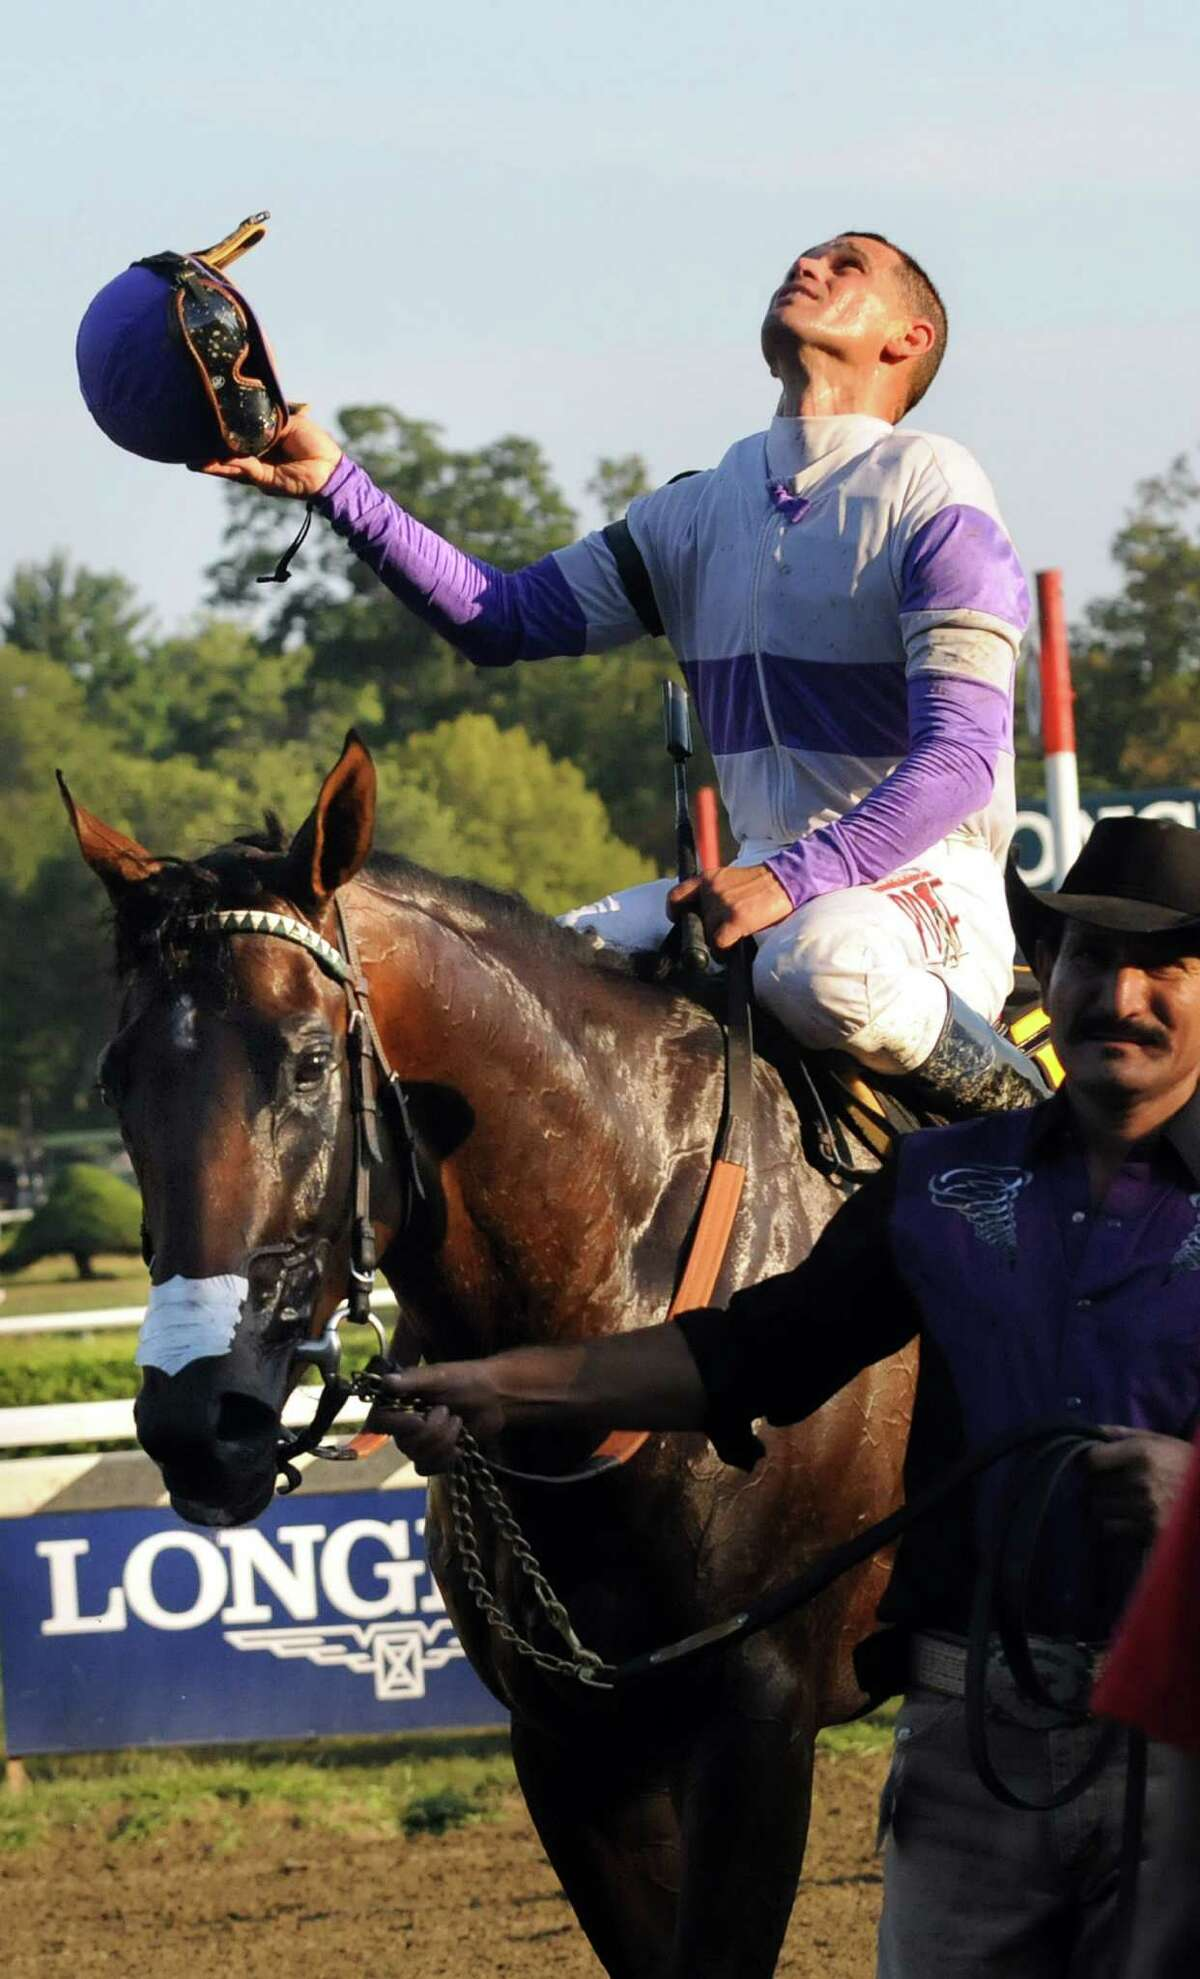 Jockey Javier Castellano celebrates atop Ralis after they take first in The Hopeful grade I race on Tuesday, Sept. 7, 2015, at Saratoga Race Course in Saratoga Springs, N.Y. (Cindy Schultz / Times Union)